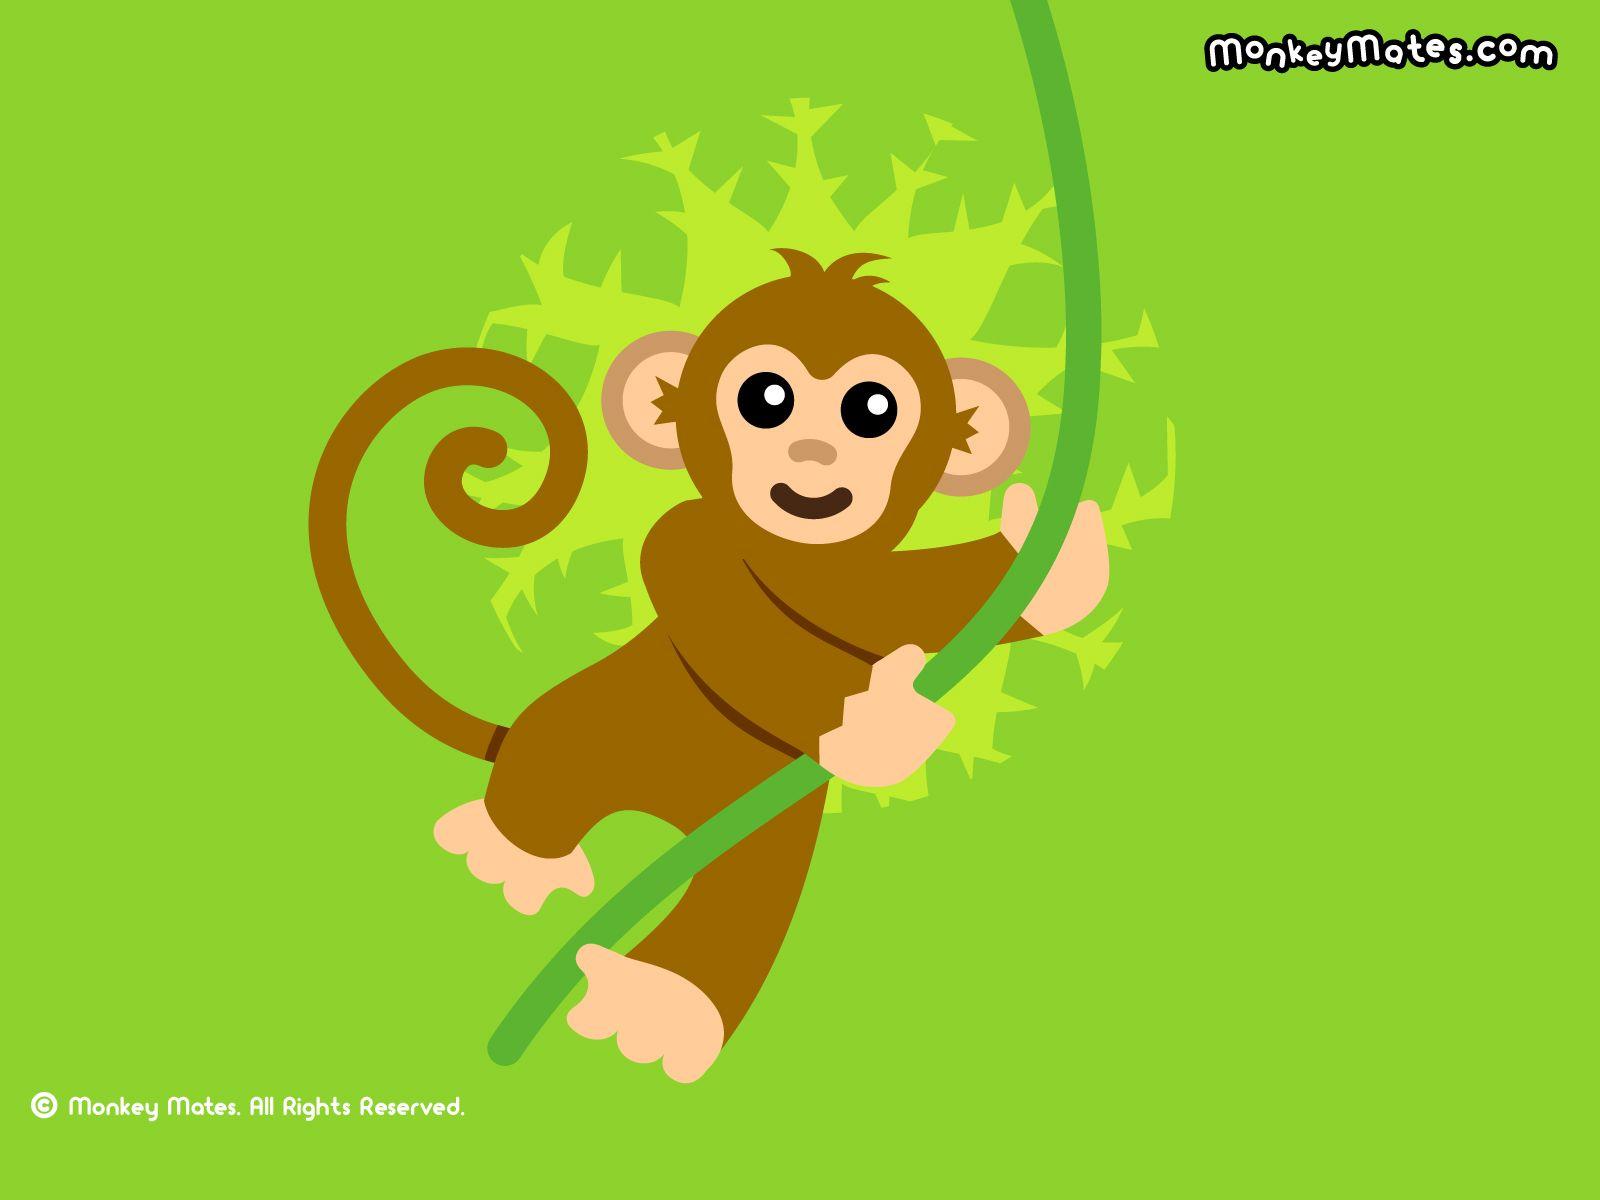 japanese wallpaper cartoon monkey - photo #3